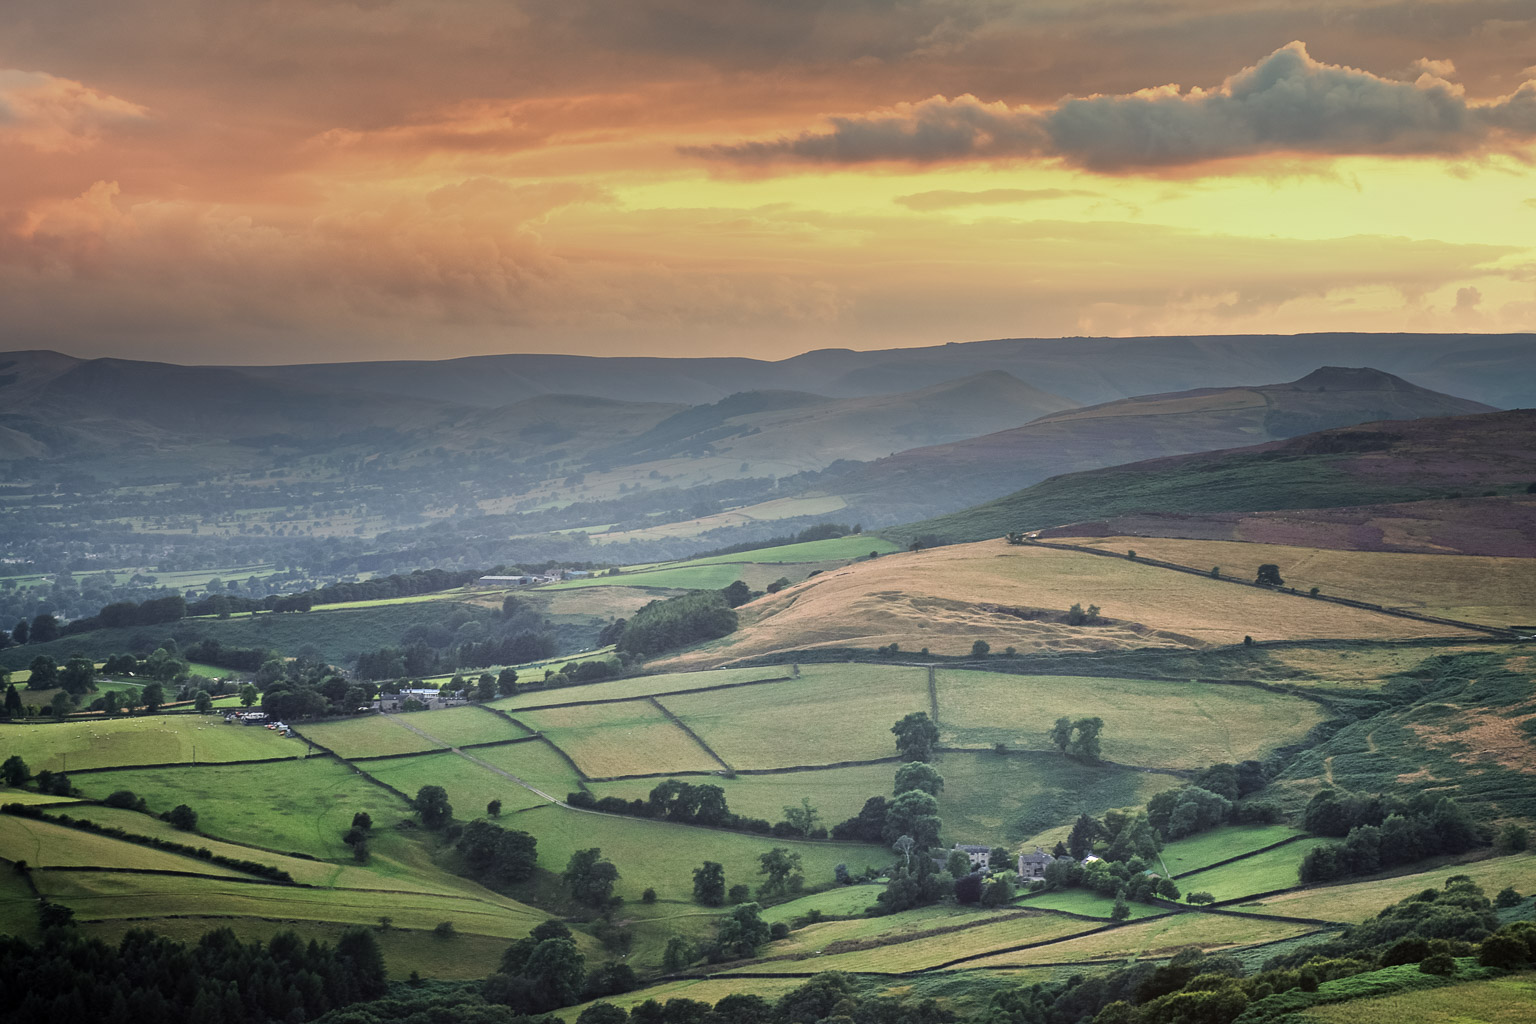 The View Out from Stanage Edge is one of the best in the Peak District. Win Hill, Lose Hill, Mam Tor, Kinder Scout, Grindslow Knoll, Rushop Edge, Higher Tor and endless valleys can all be seen.